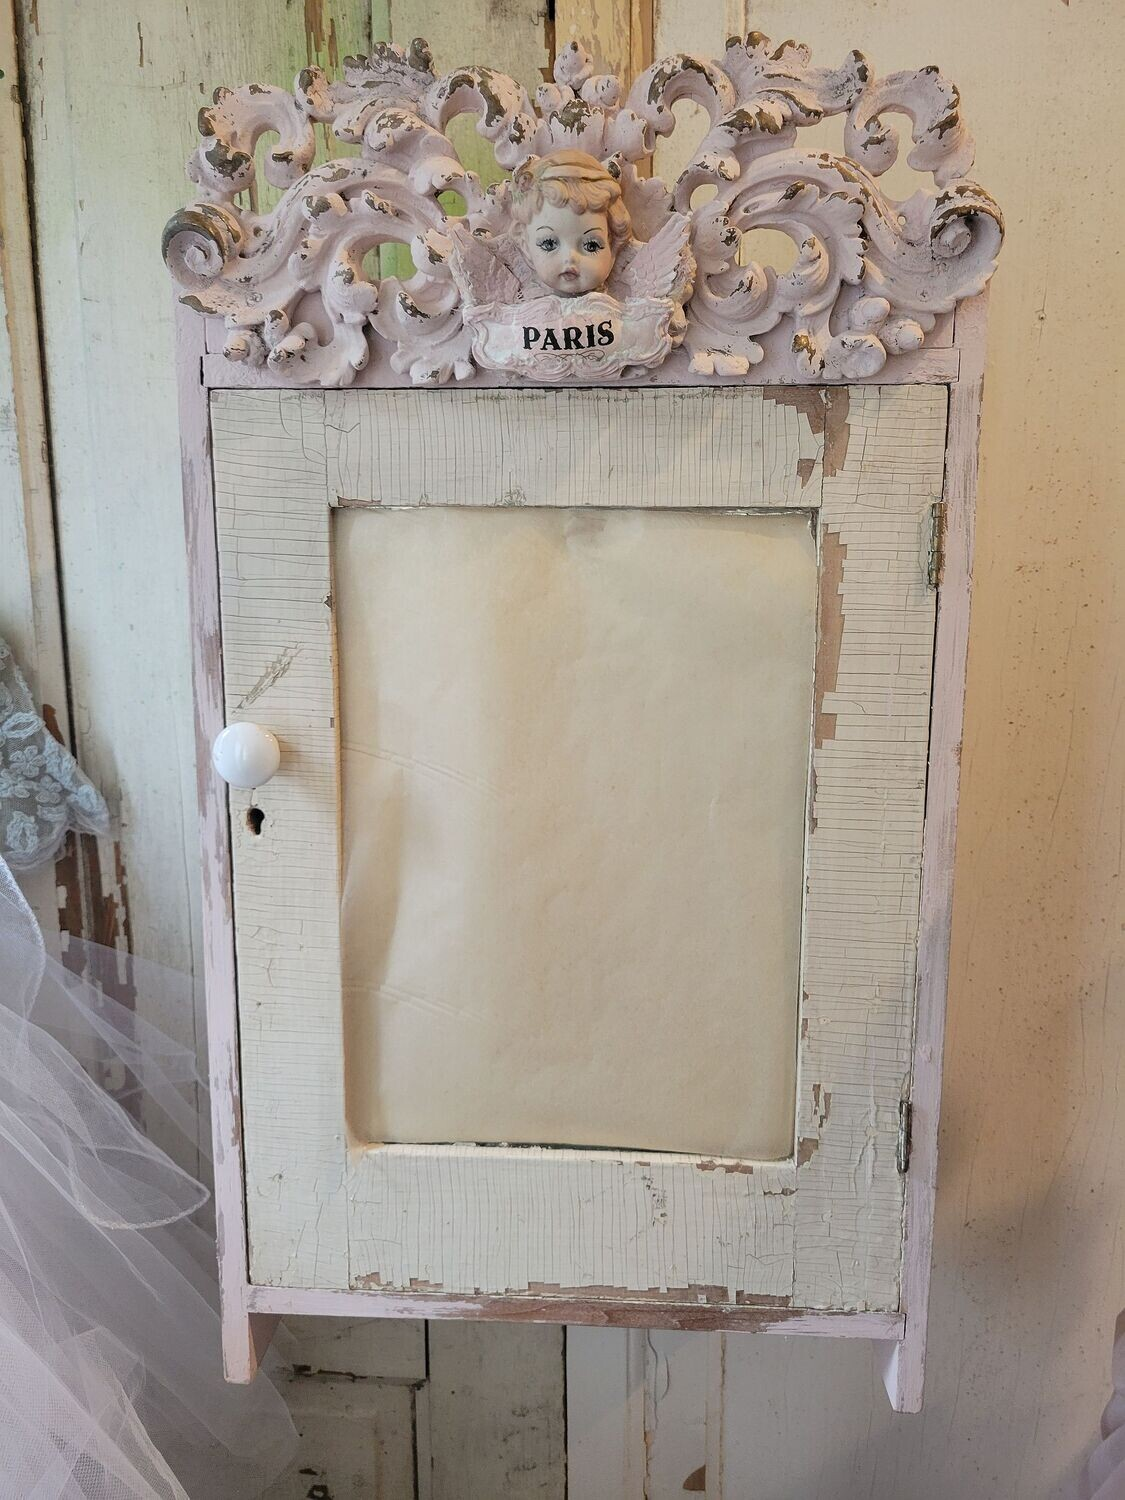 Vintage wood cabinet with mirrored door, detailed with ornate header and antique angel